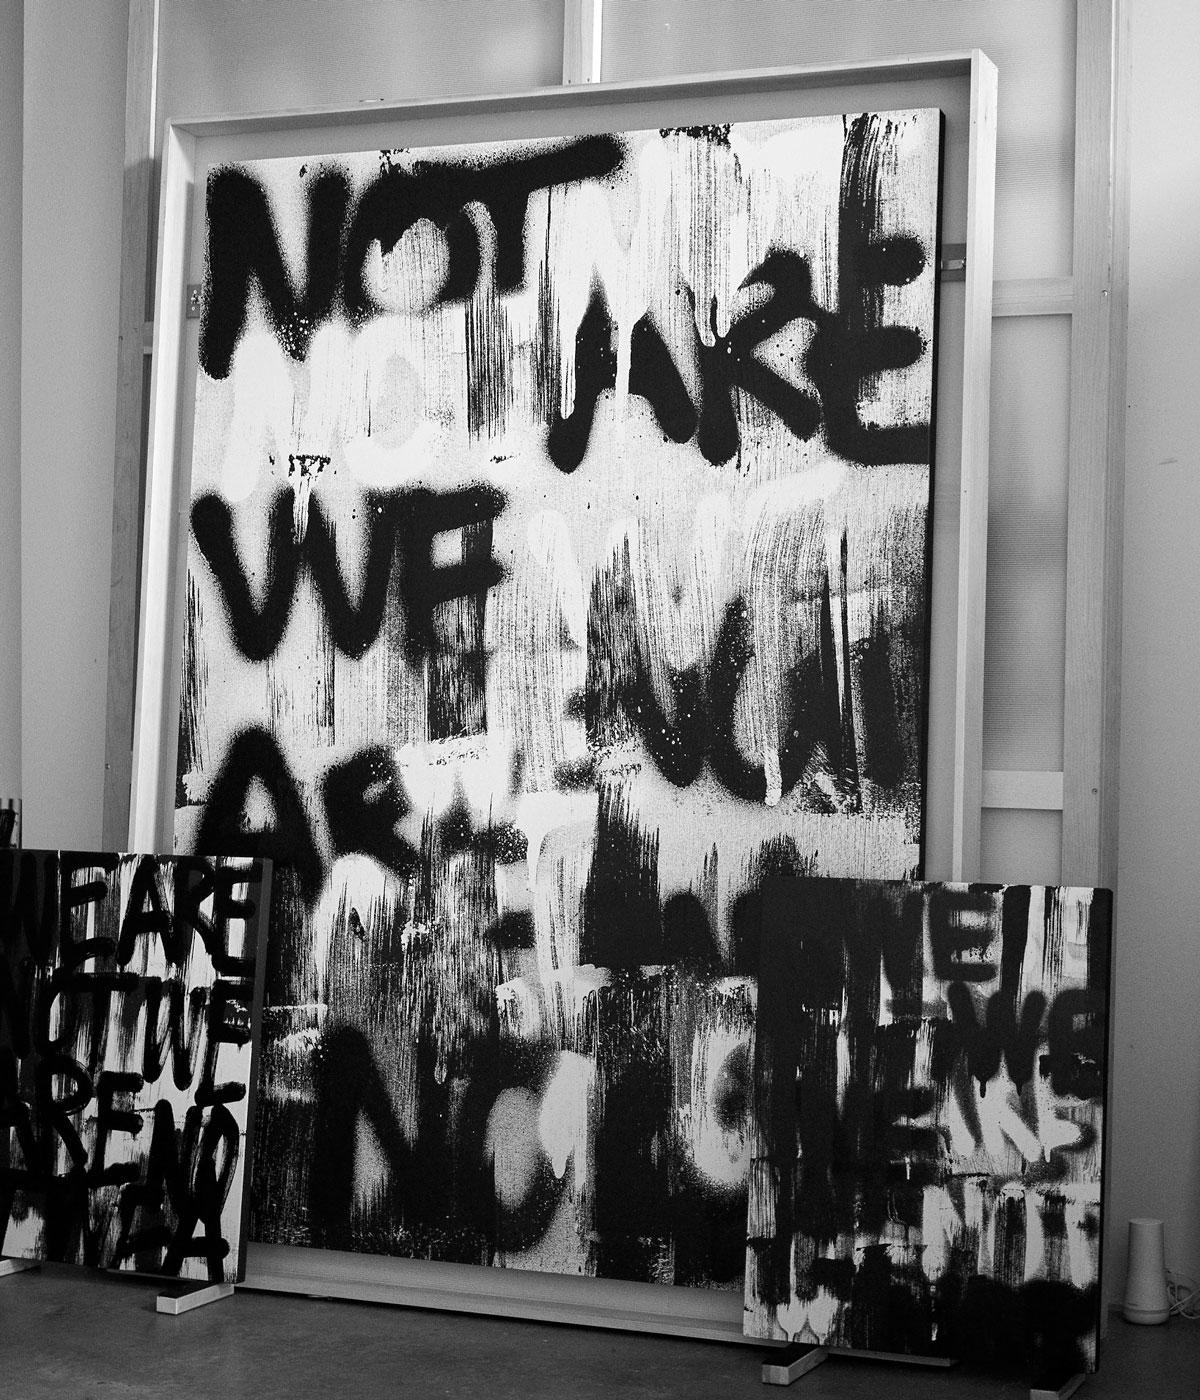 black and white picture of spray painting words